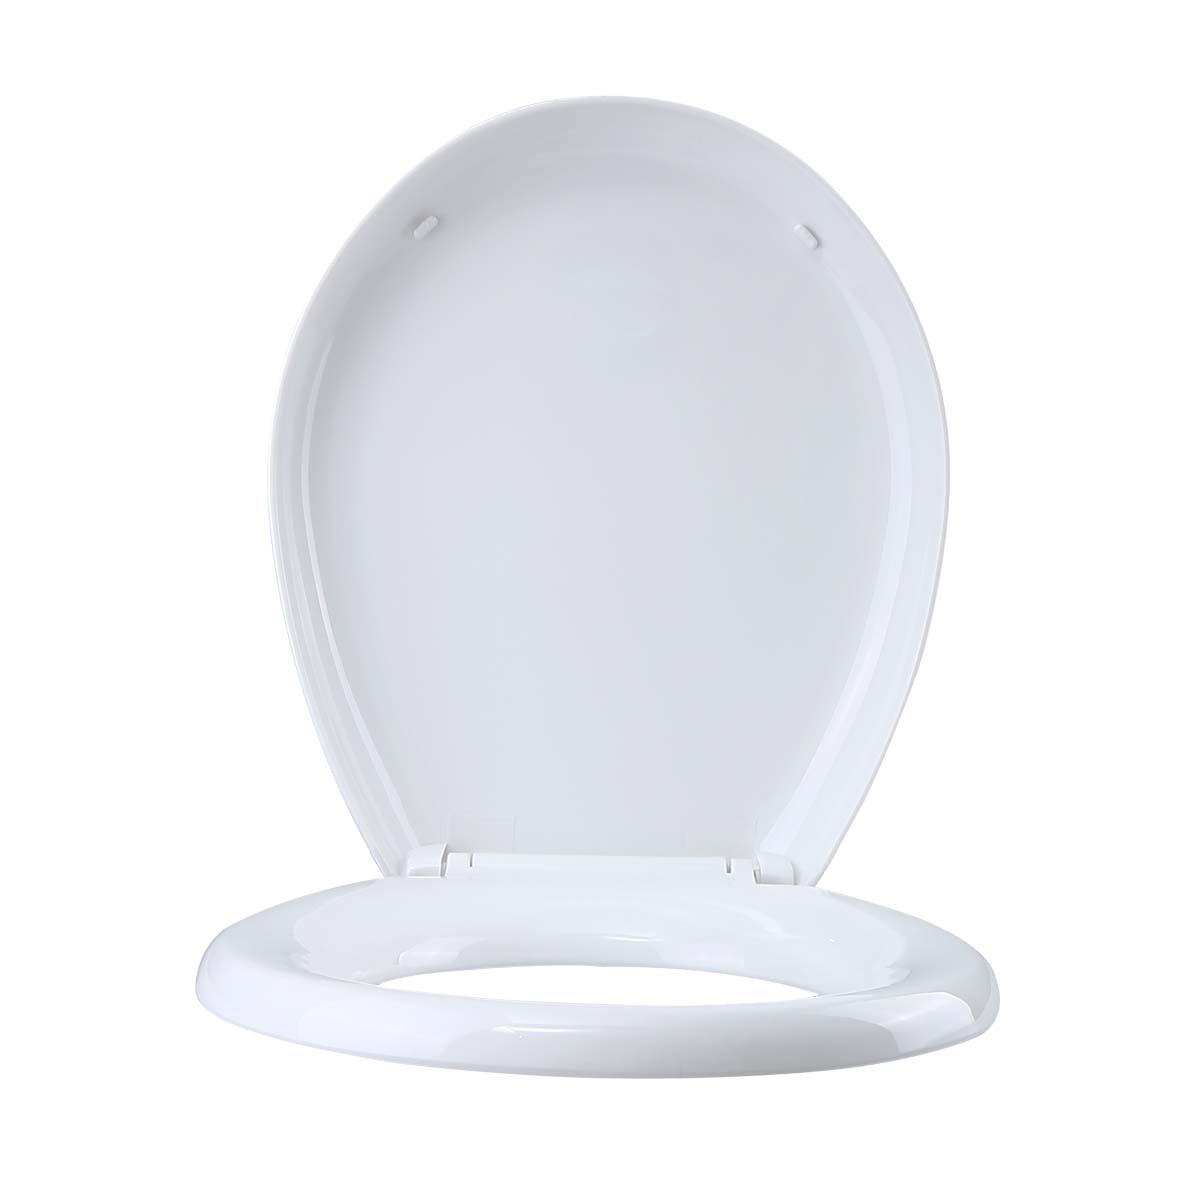 Toilet Seat Slow EZ Close No Slam Plastic Round White Set of 3 novelty decorative replacement loo commode lavatory custom unusual luxury quality standard color design pretty